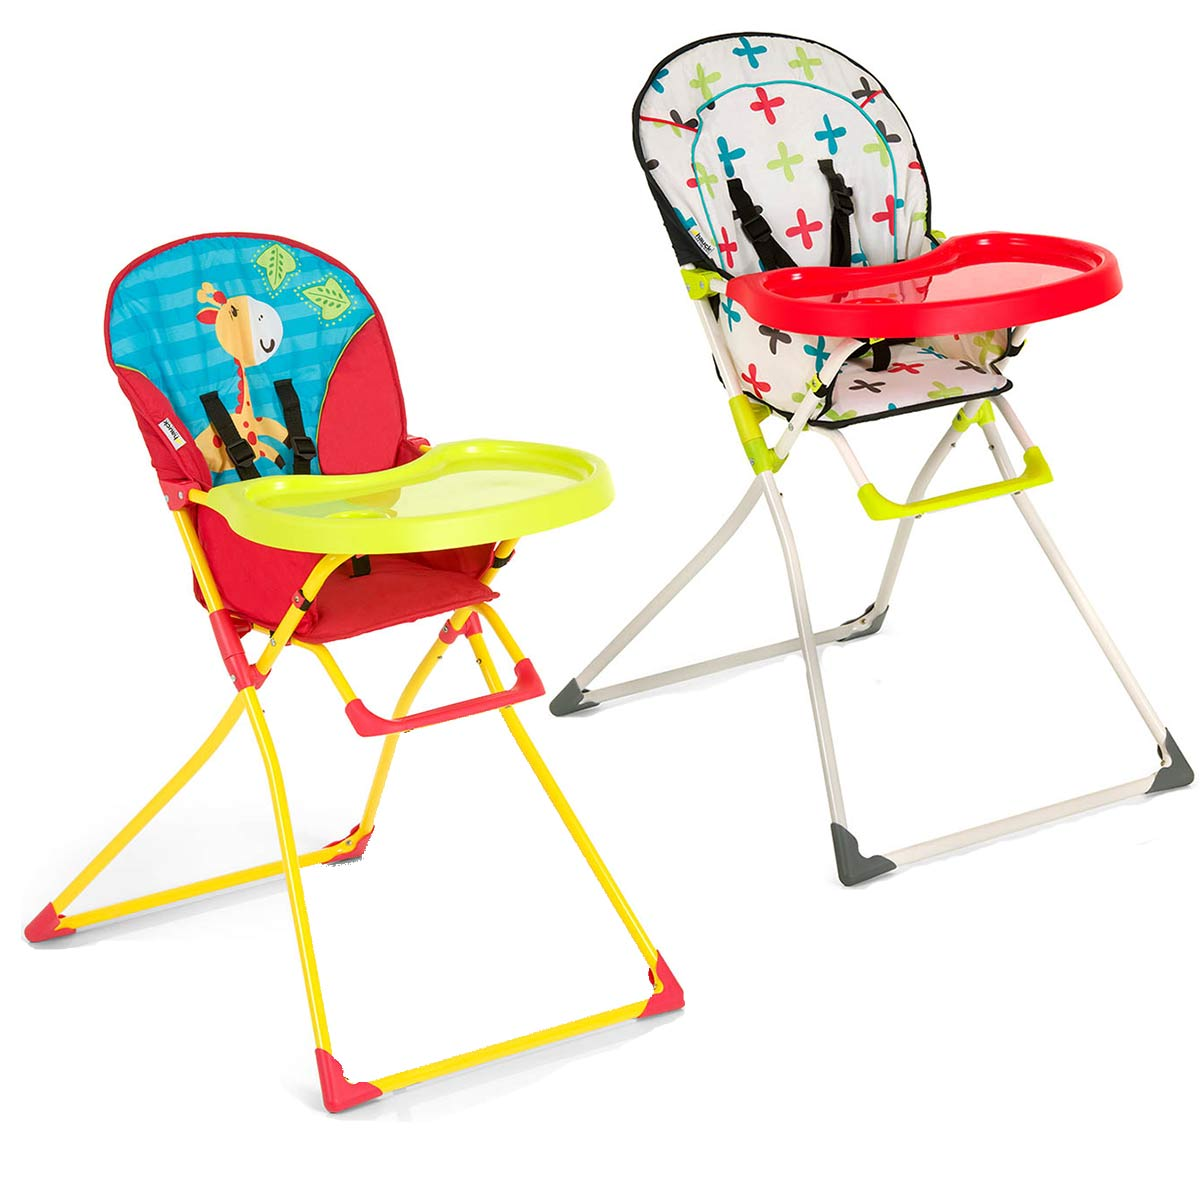 Hauck MAC BABY FOLDING HIGHCHAIR Jungle Cross Baby Toddler Child Feeding